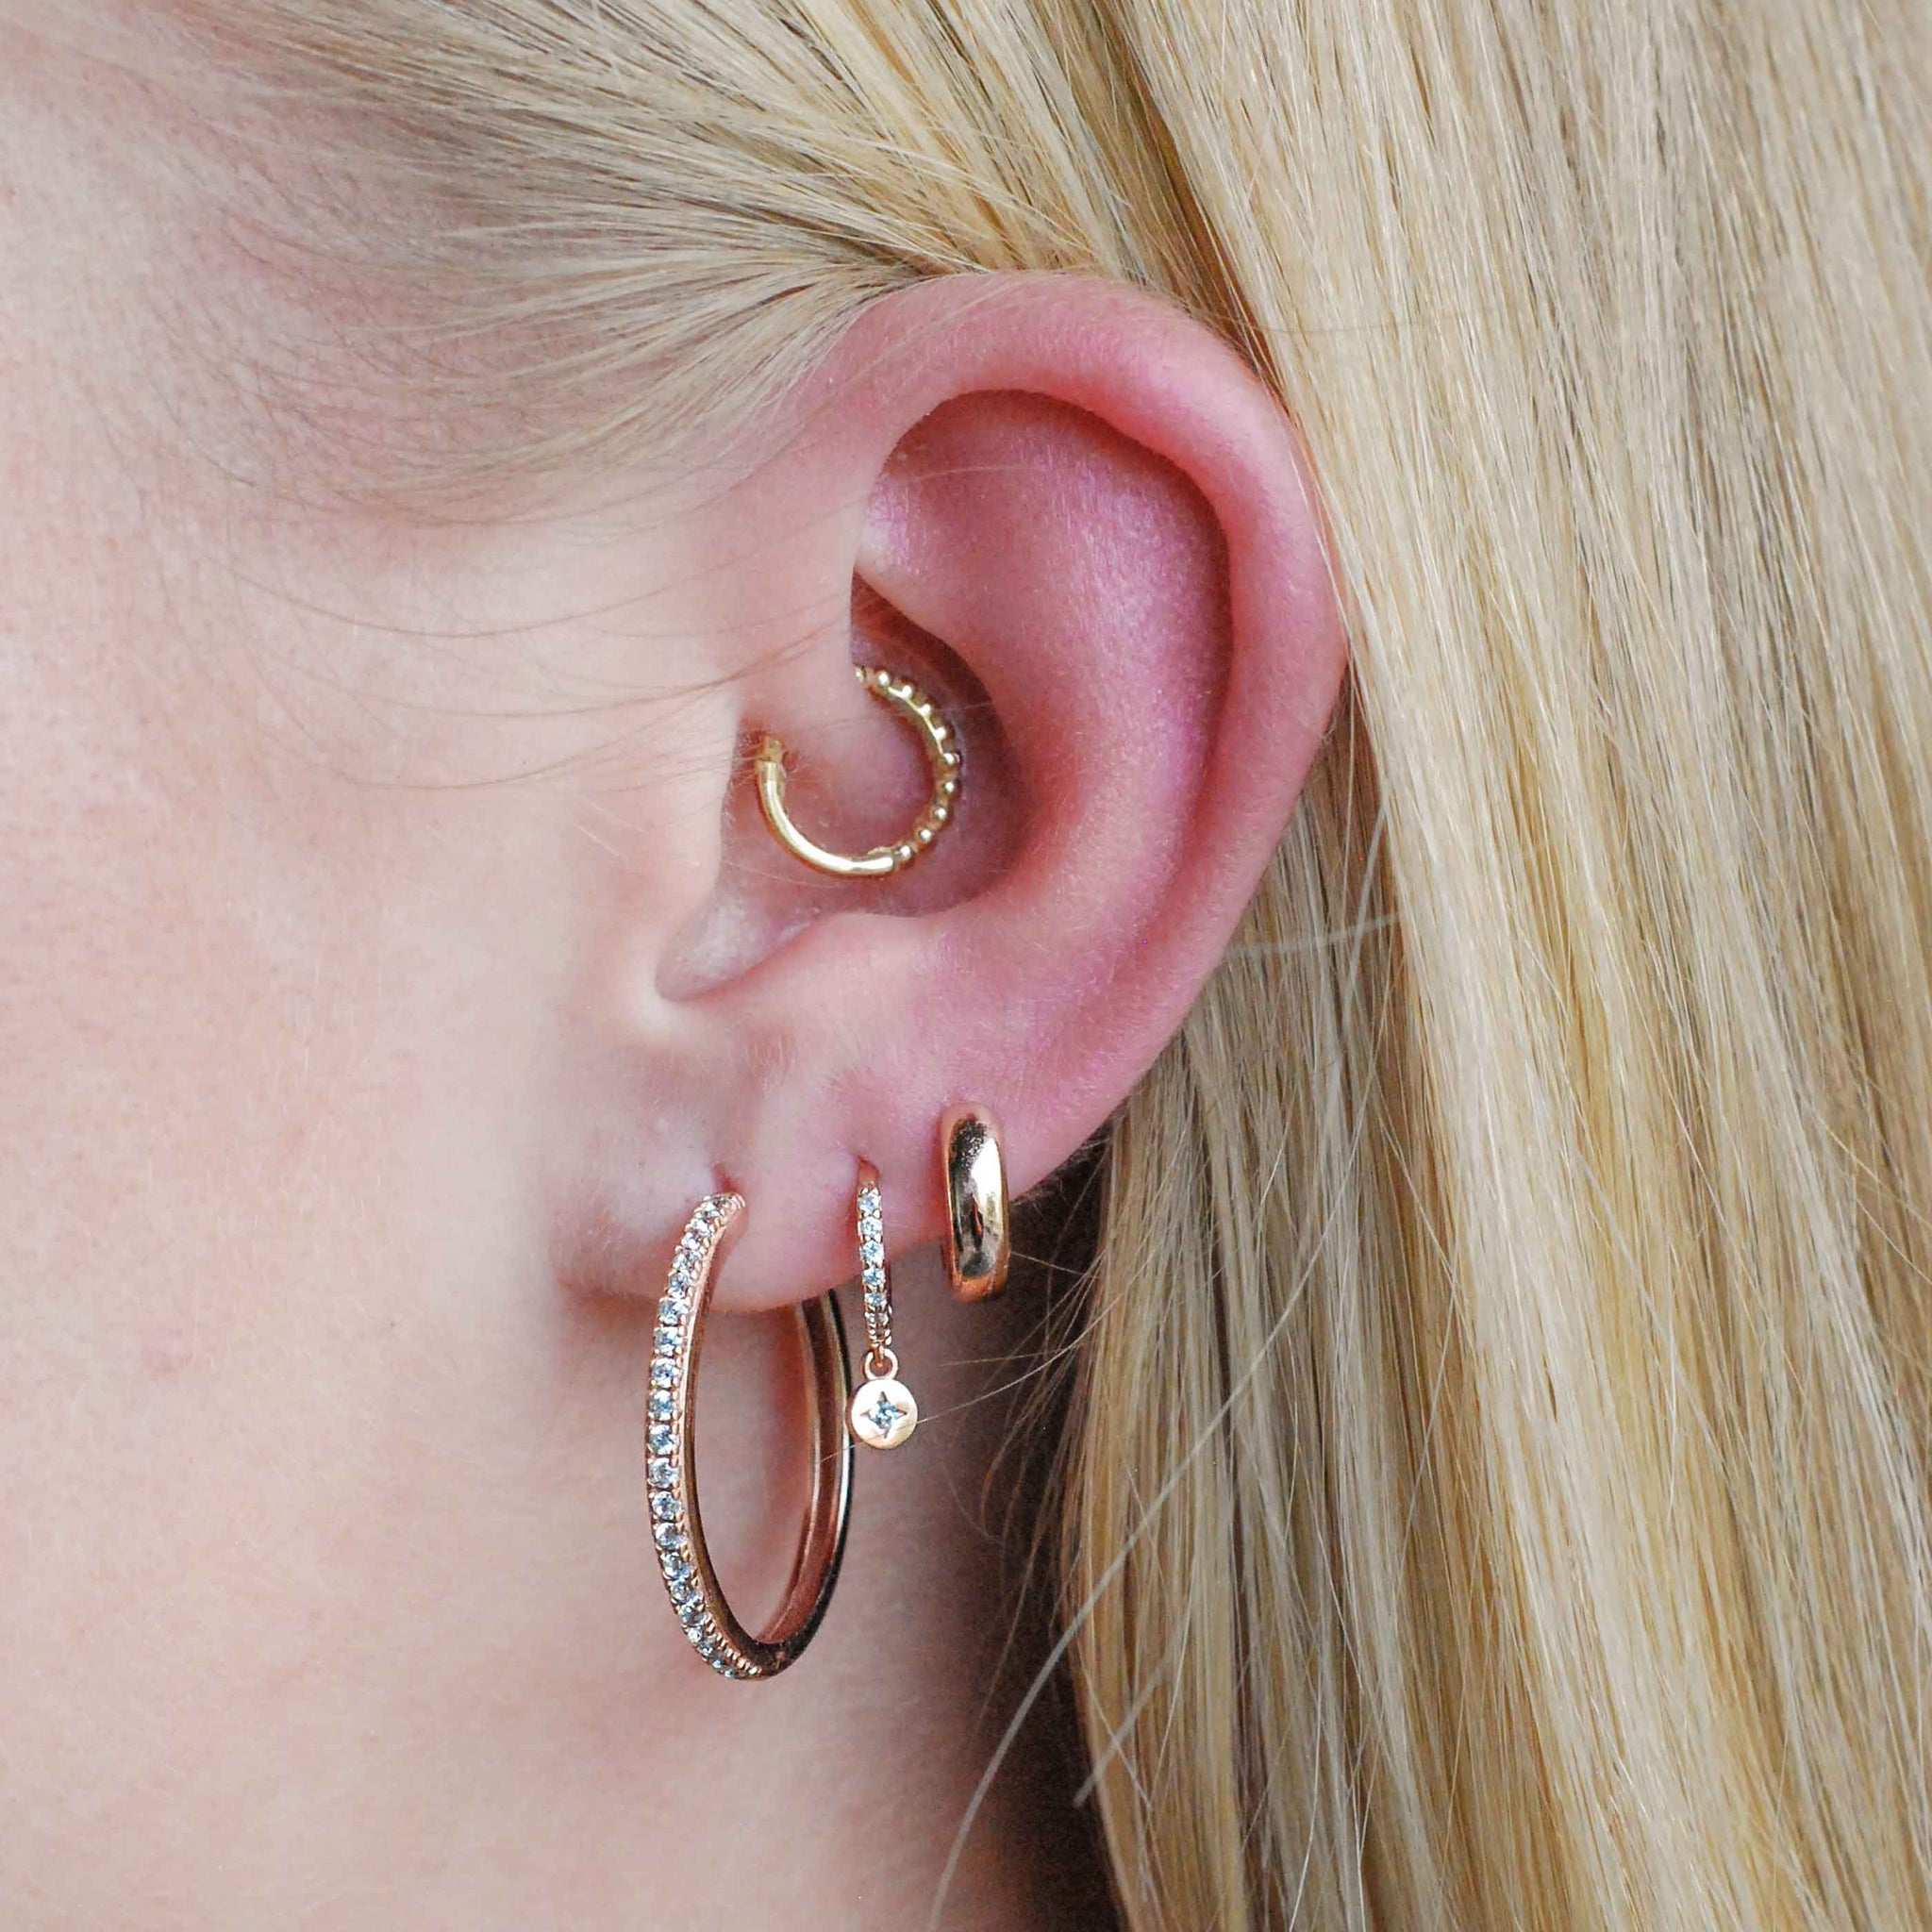 Crystal Hinge Hoops in Rose Gold worn with huggies